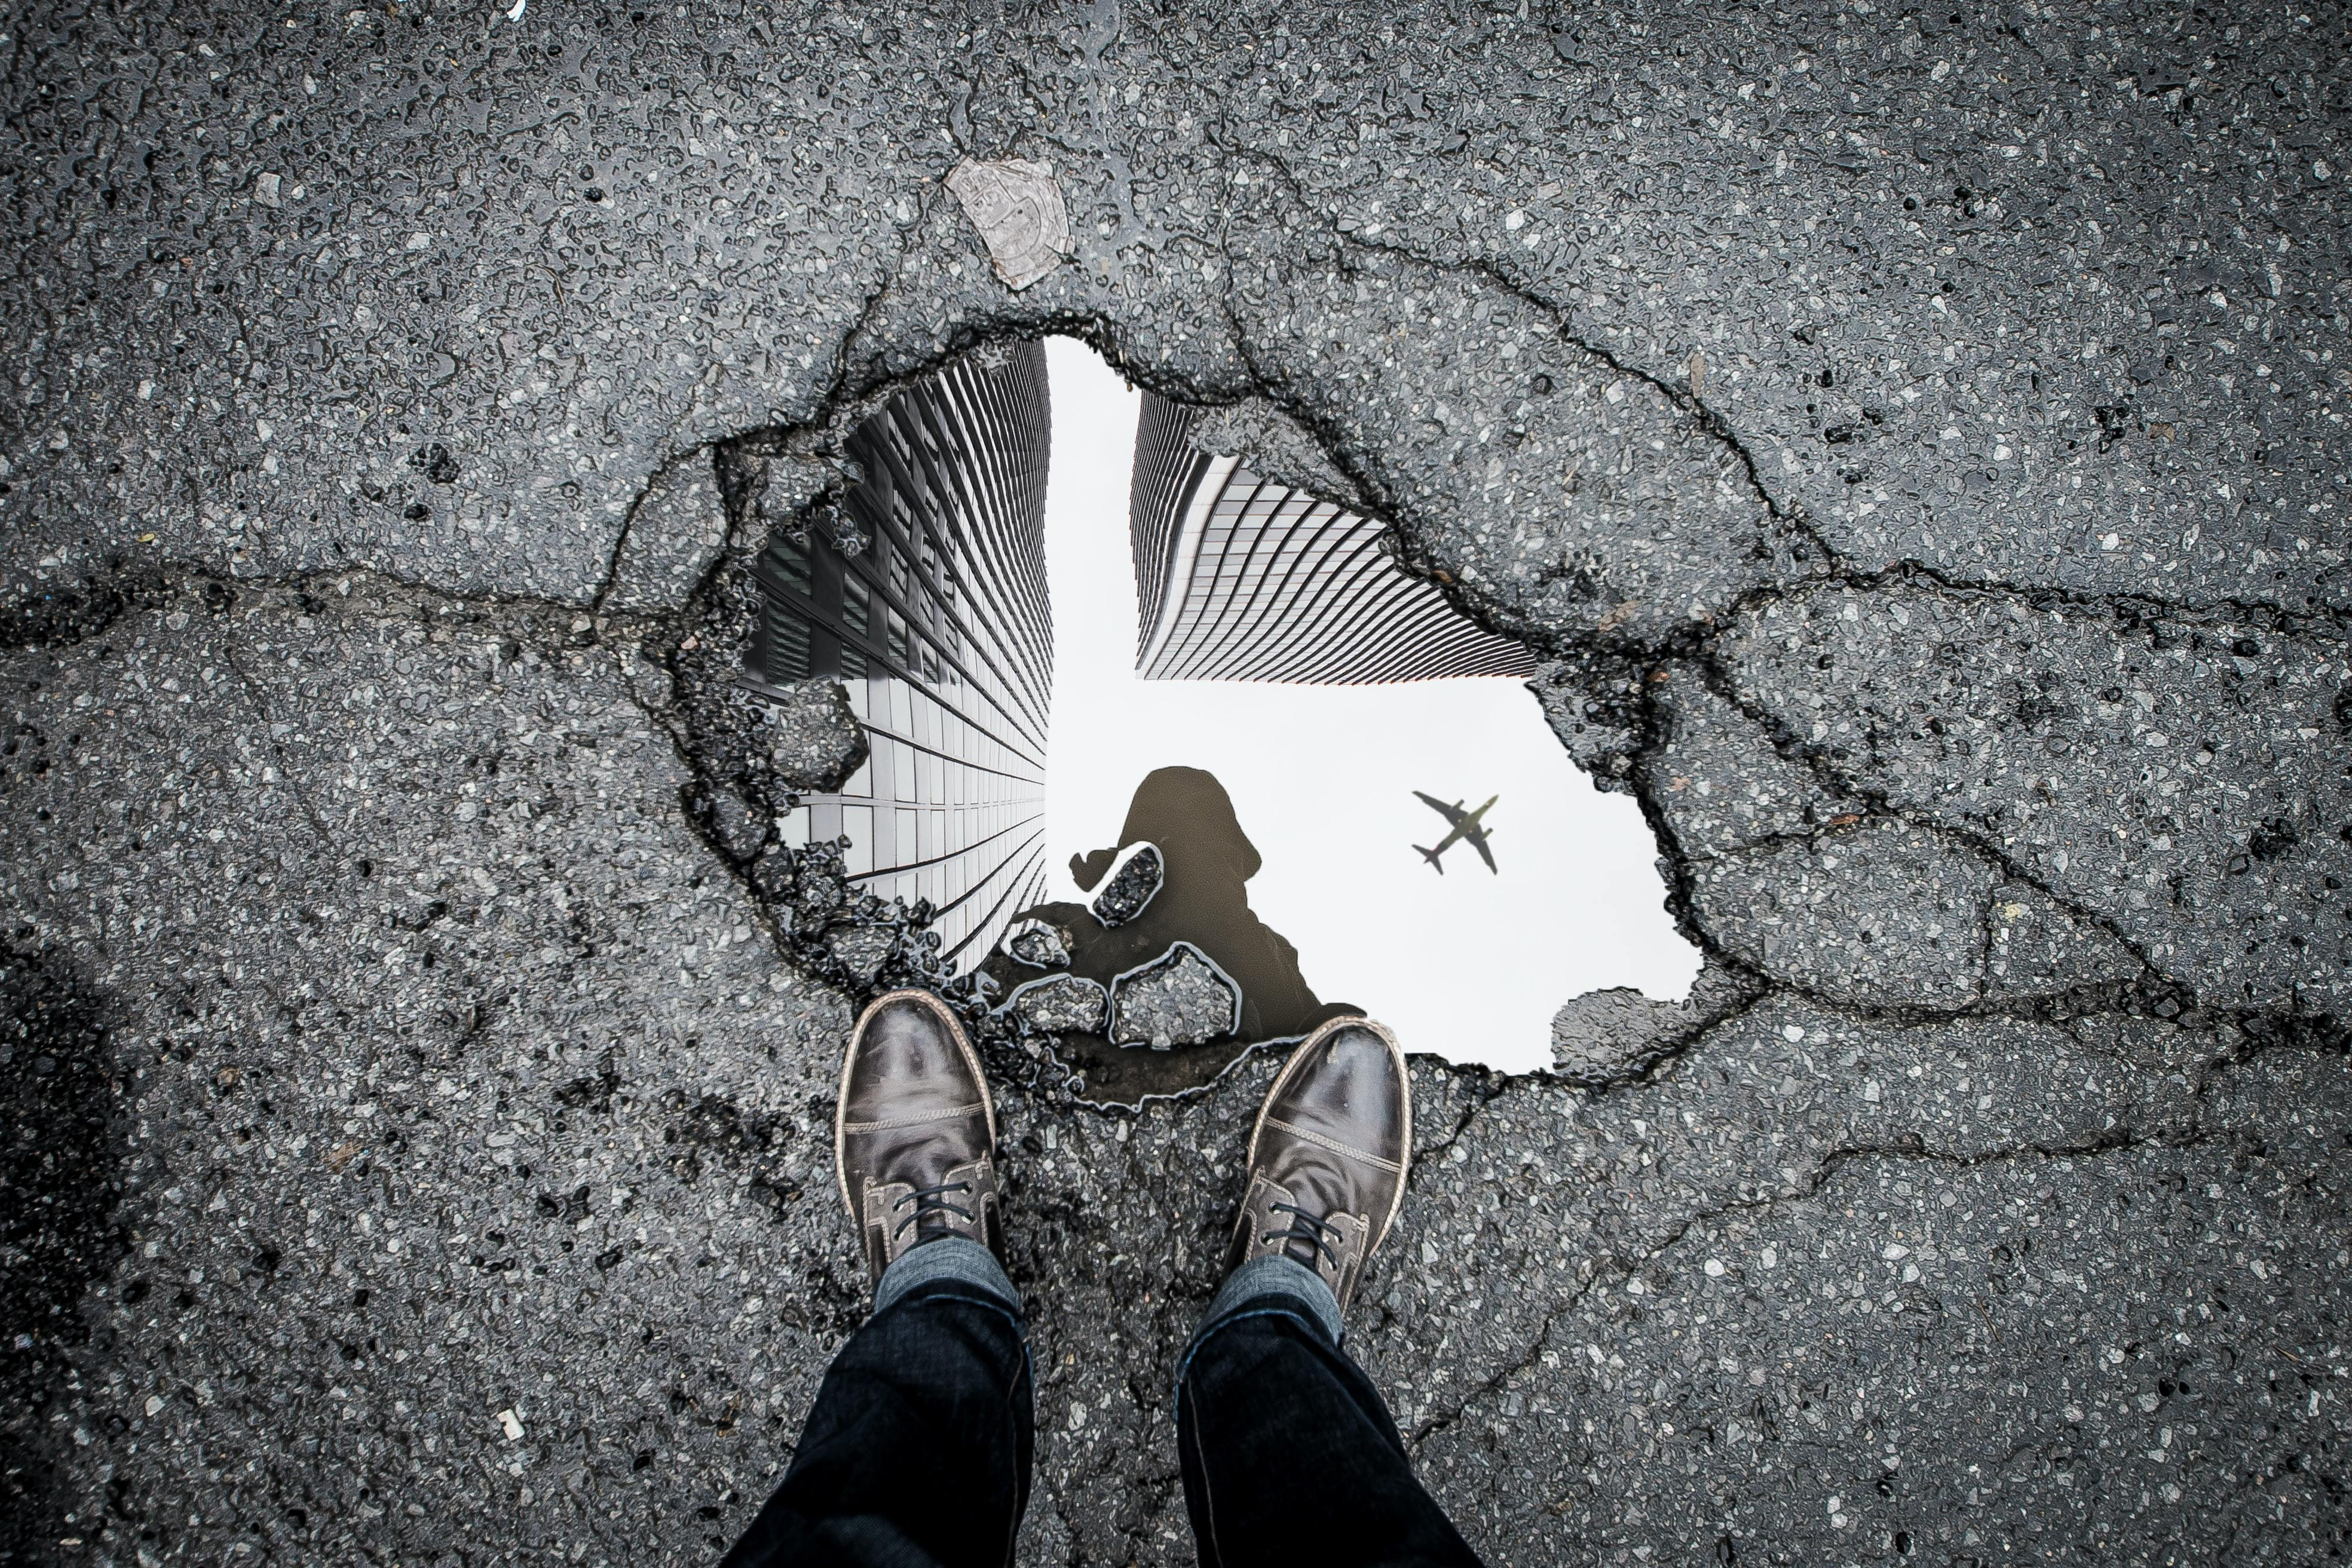 Person Staring into a Puddle